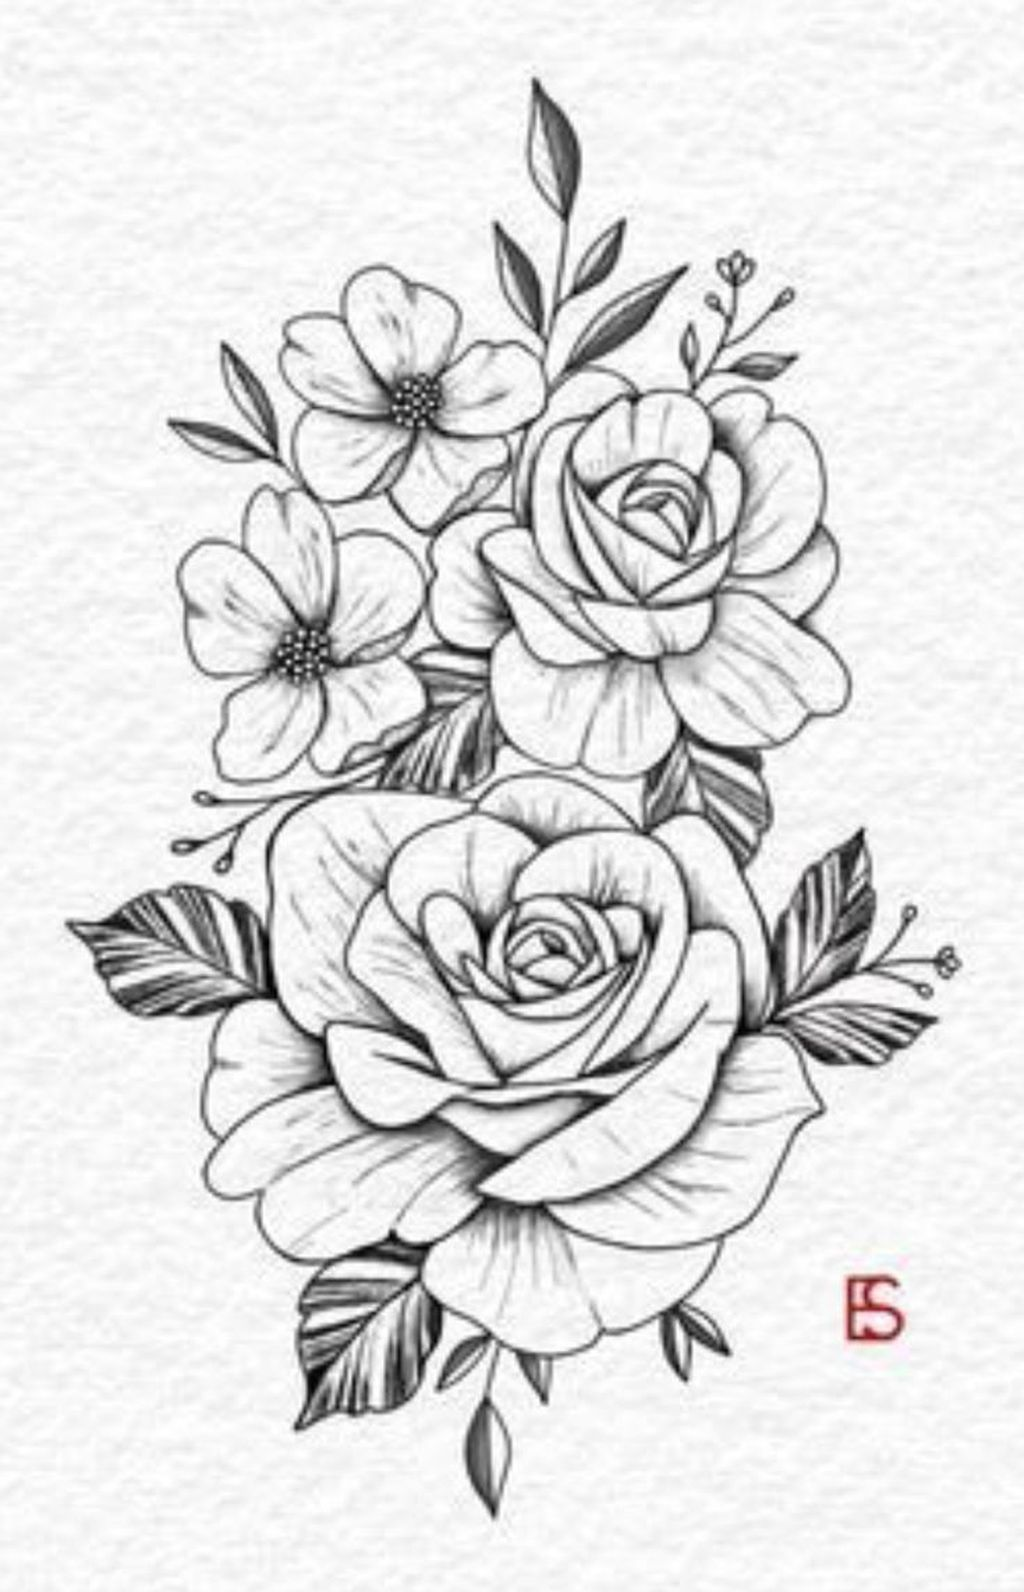 40 Modern Tattoos Design Ideas That You Must Try Now Rose Drawing Tattoo Rose Tattoos Rose Tattoo Design